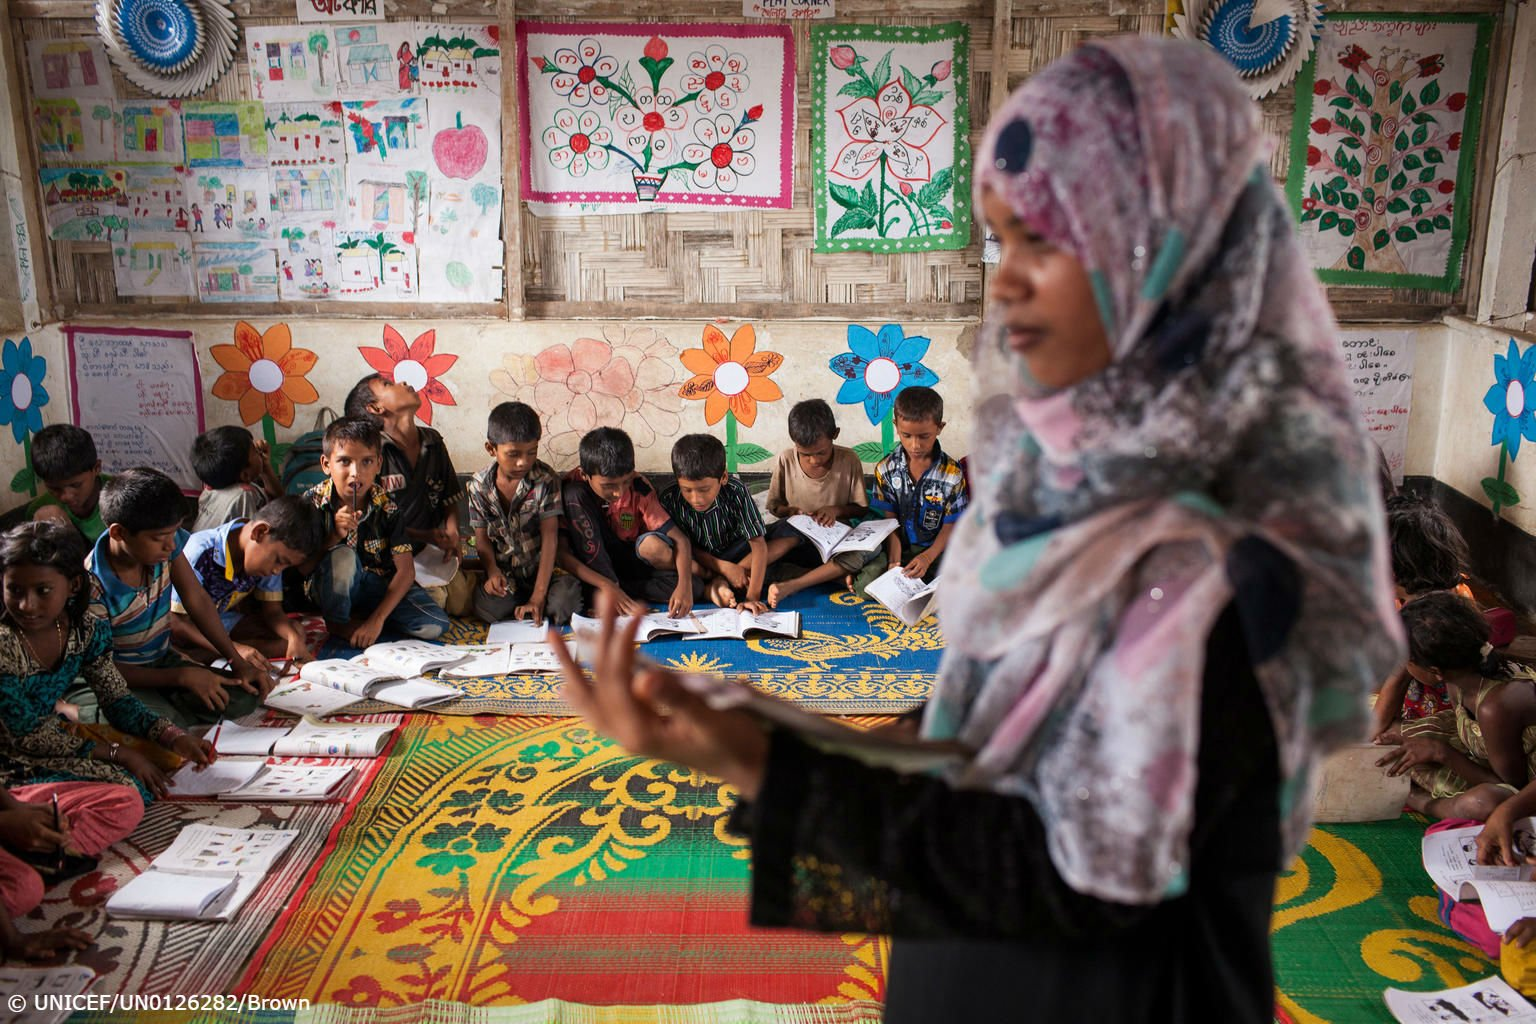 After a long and dangerous journey to #Bangladesh, Rohingya refugee children have a safe place to learn. https://t.co/4MQ8FAsfBm